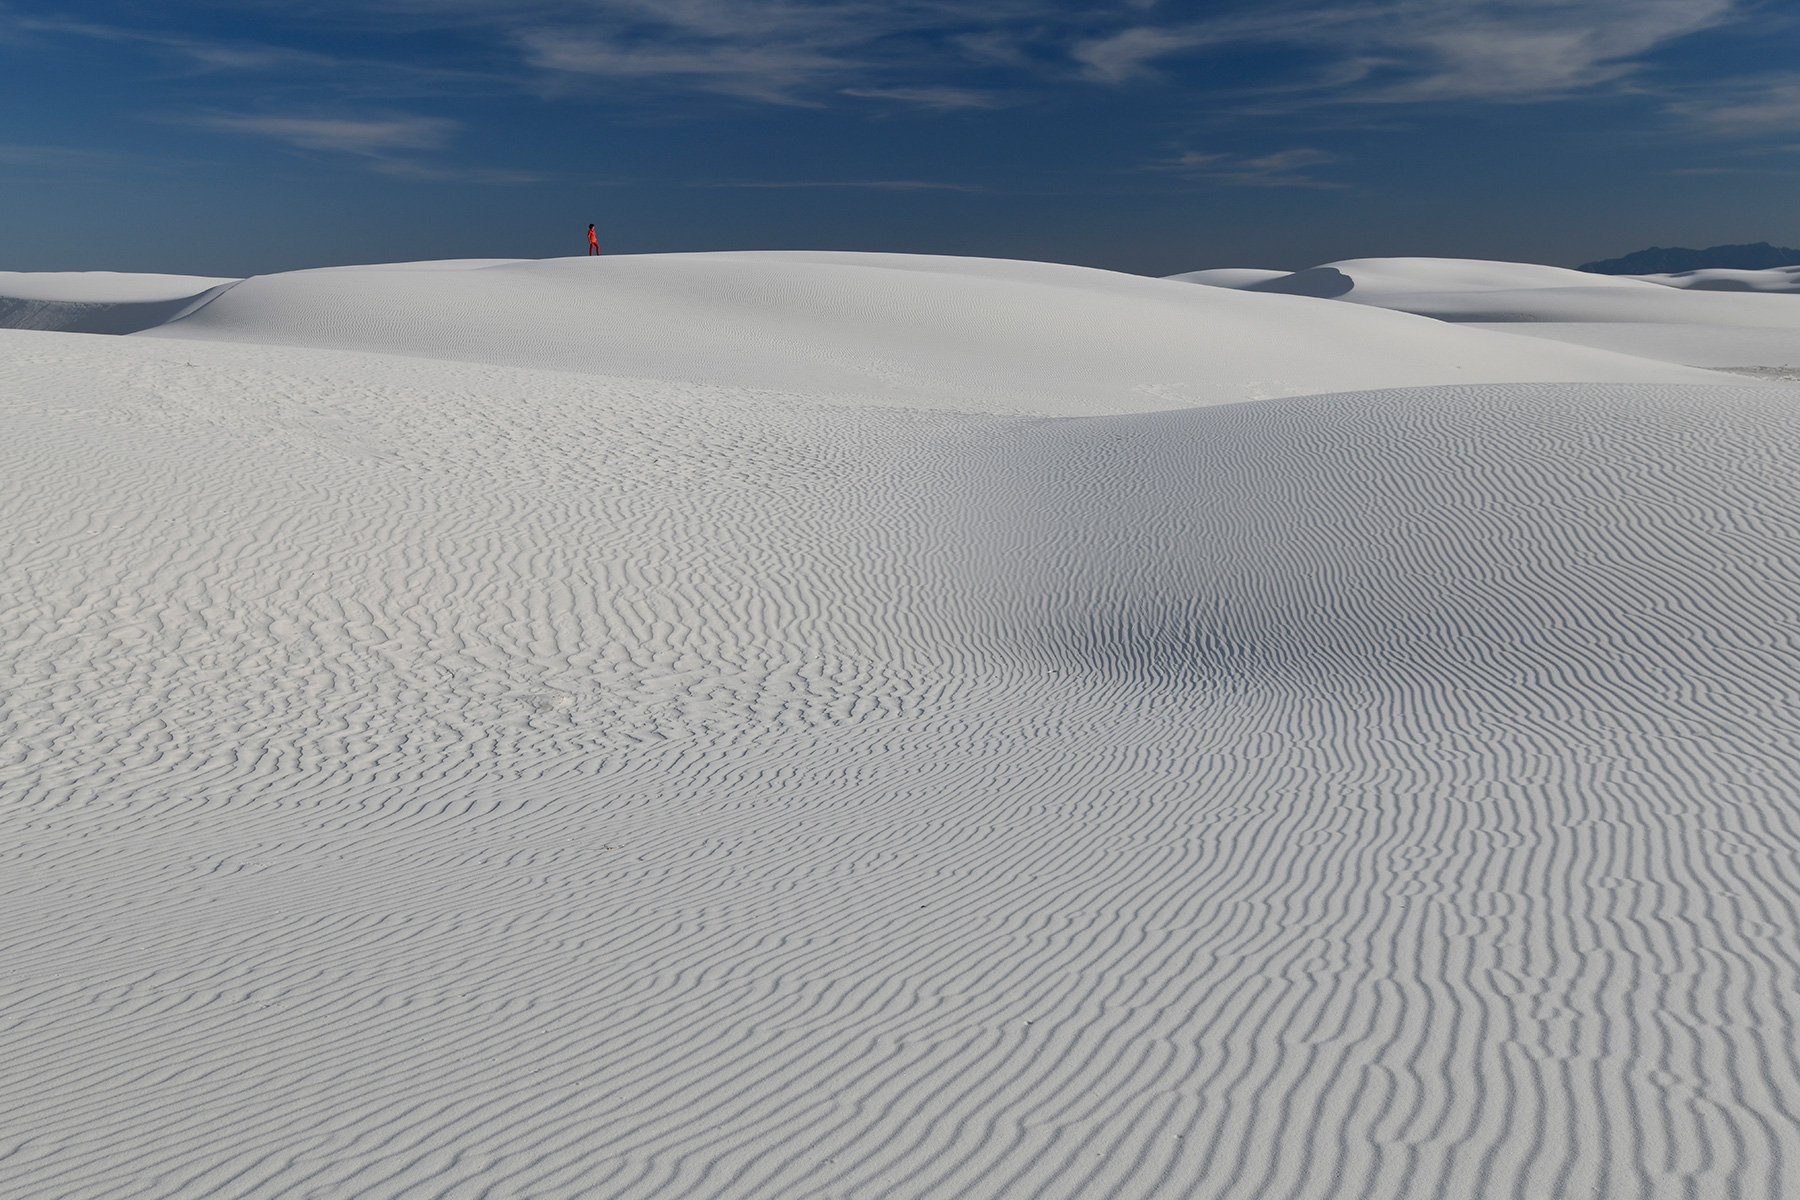 White Sands National Park (Nouveau Mexique, USA) - Ensemble de dunes de sable blanc de gypse avec rides